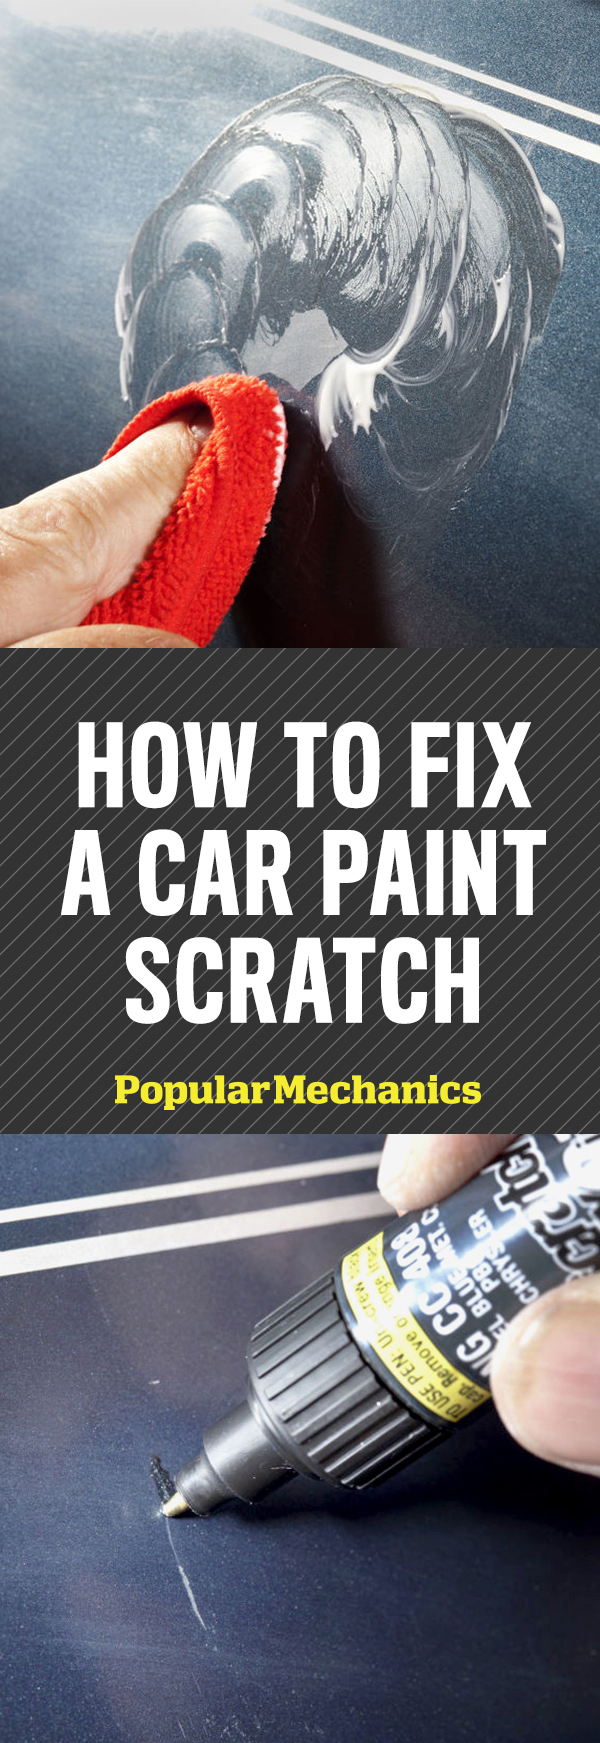 10 Car Scratch Remover  Repair Tips  How to Fix Paint